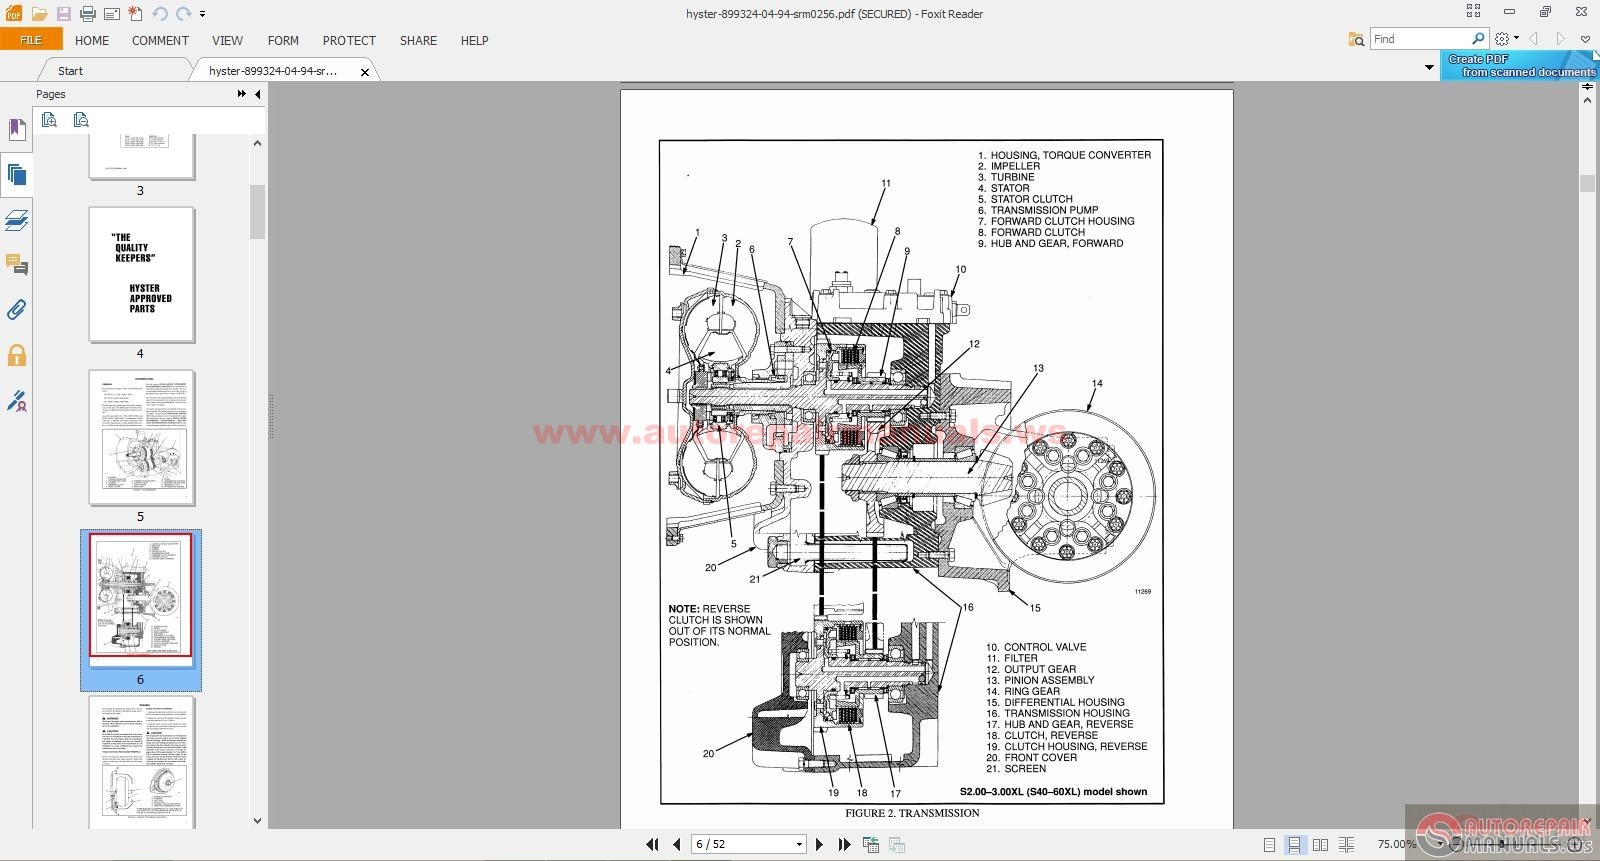 Hyster Model S50f Forklift Manual